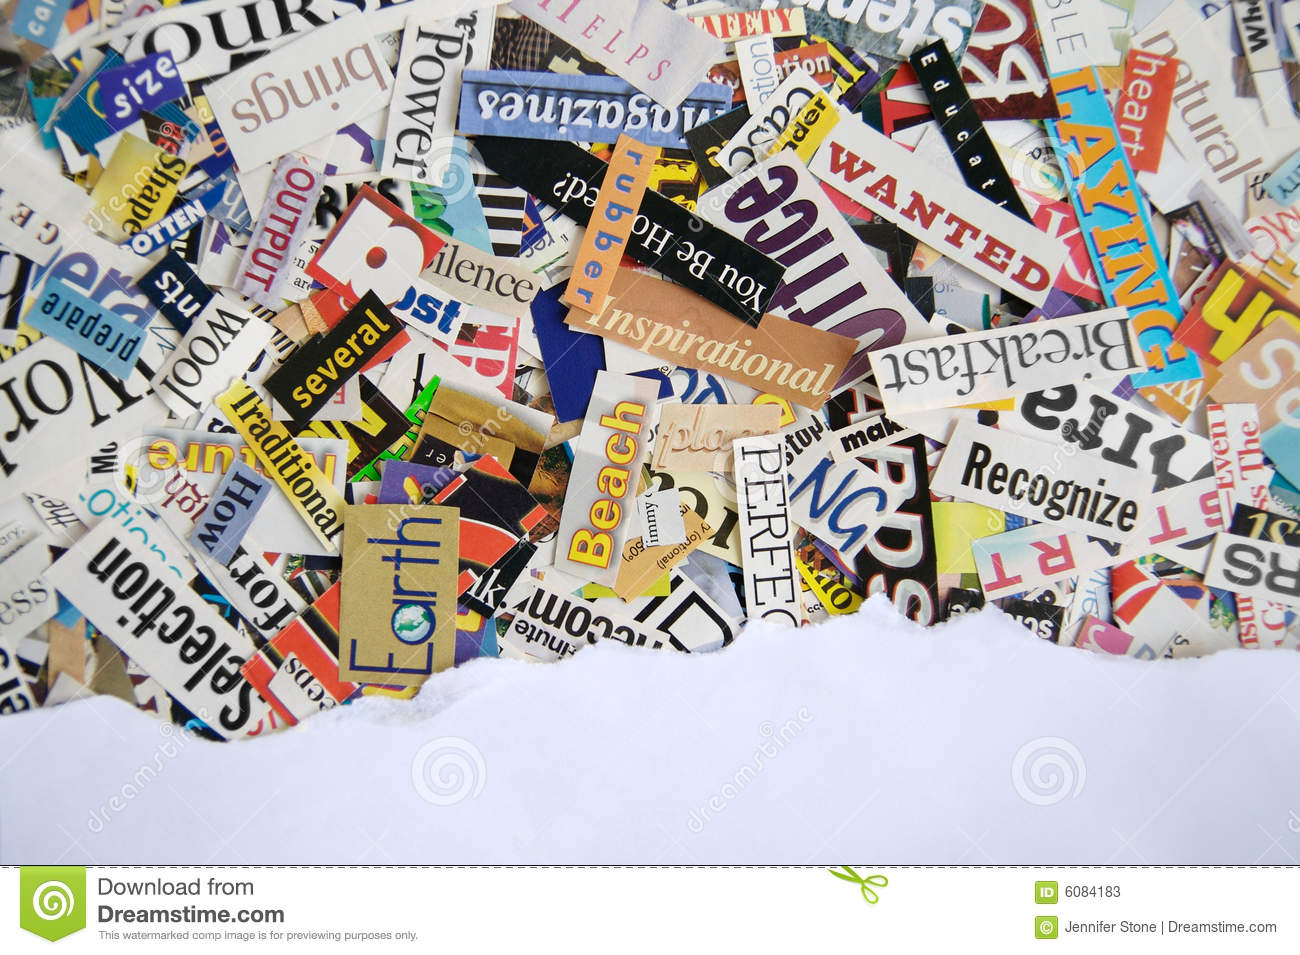 Magazine word background stock photography image 12291482 - More Similar Stock Images Of Word Clippings From Magazine Background